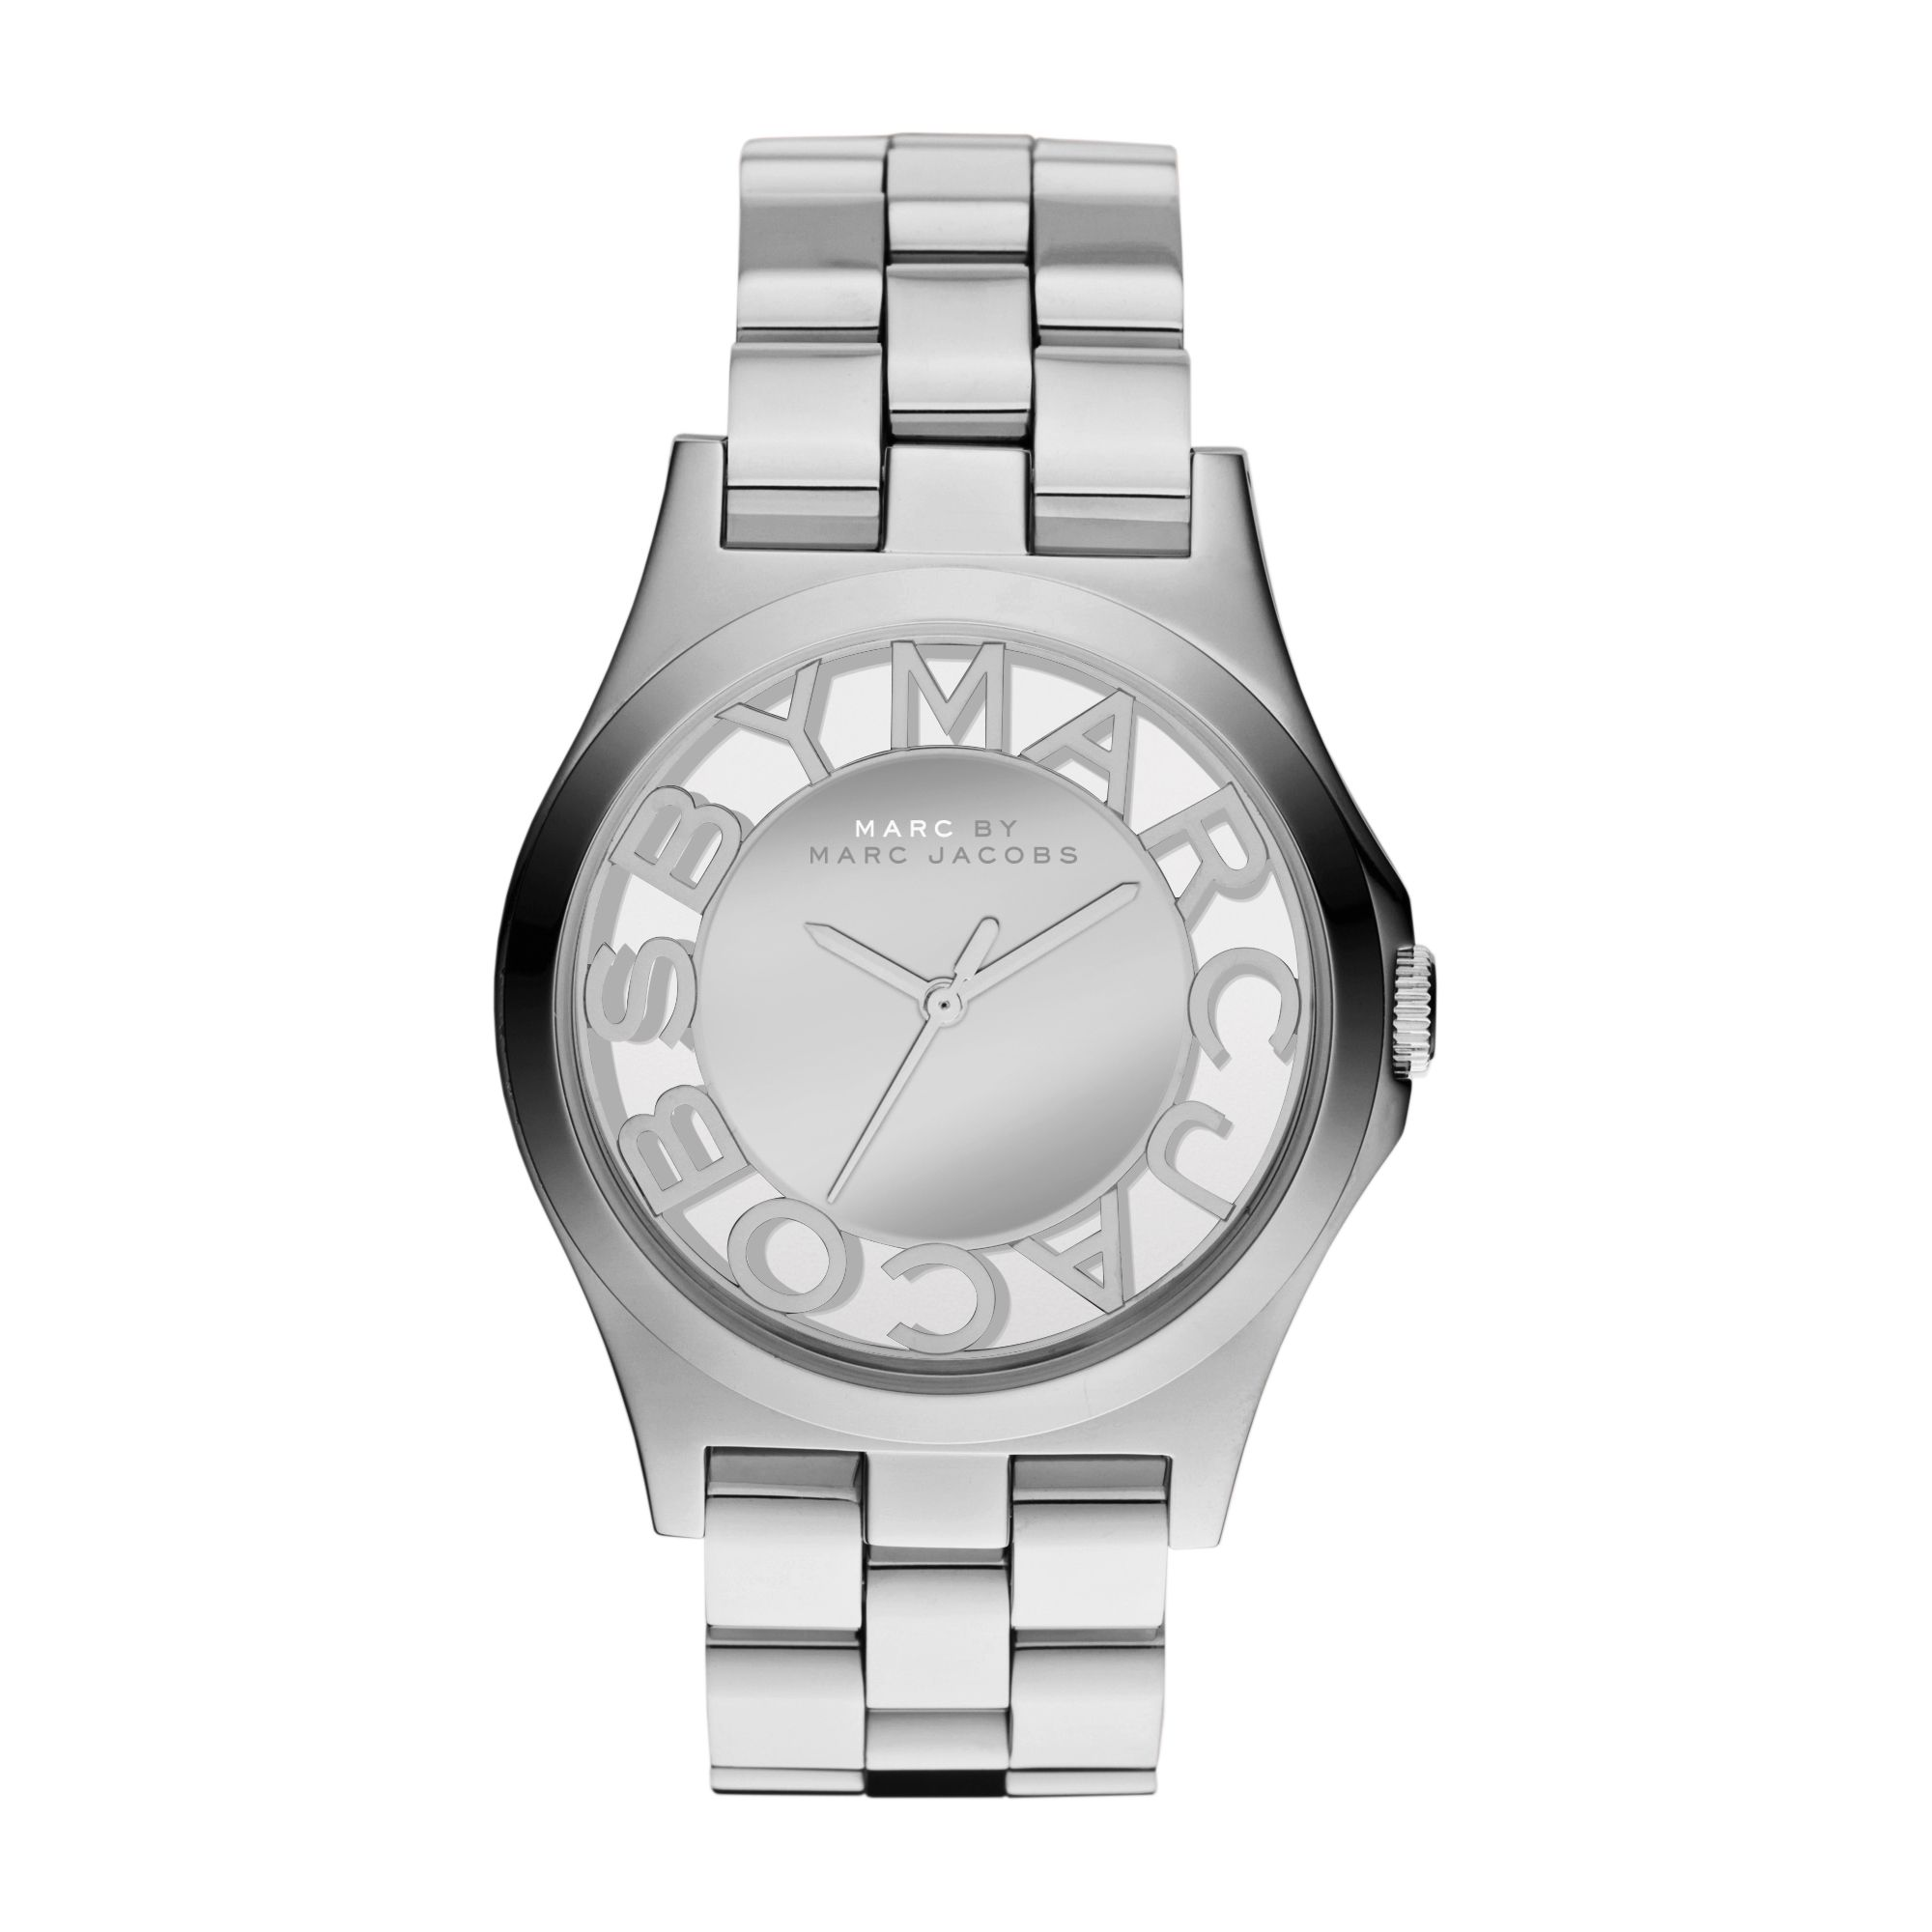 MBM3205 Skeleton Silver Ladies Watch